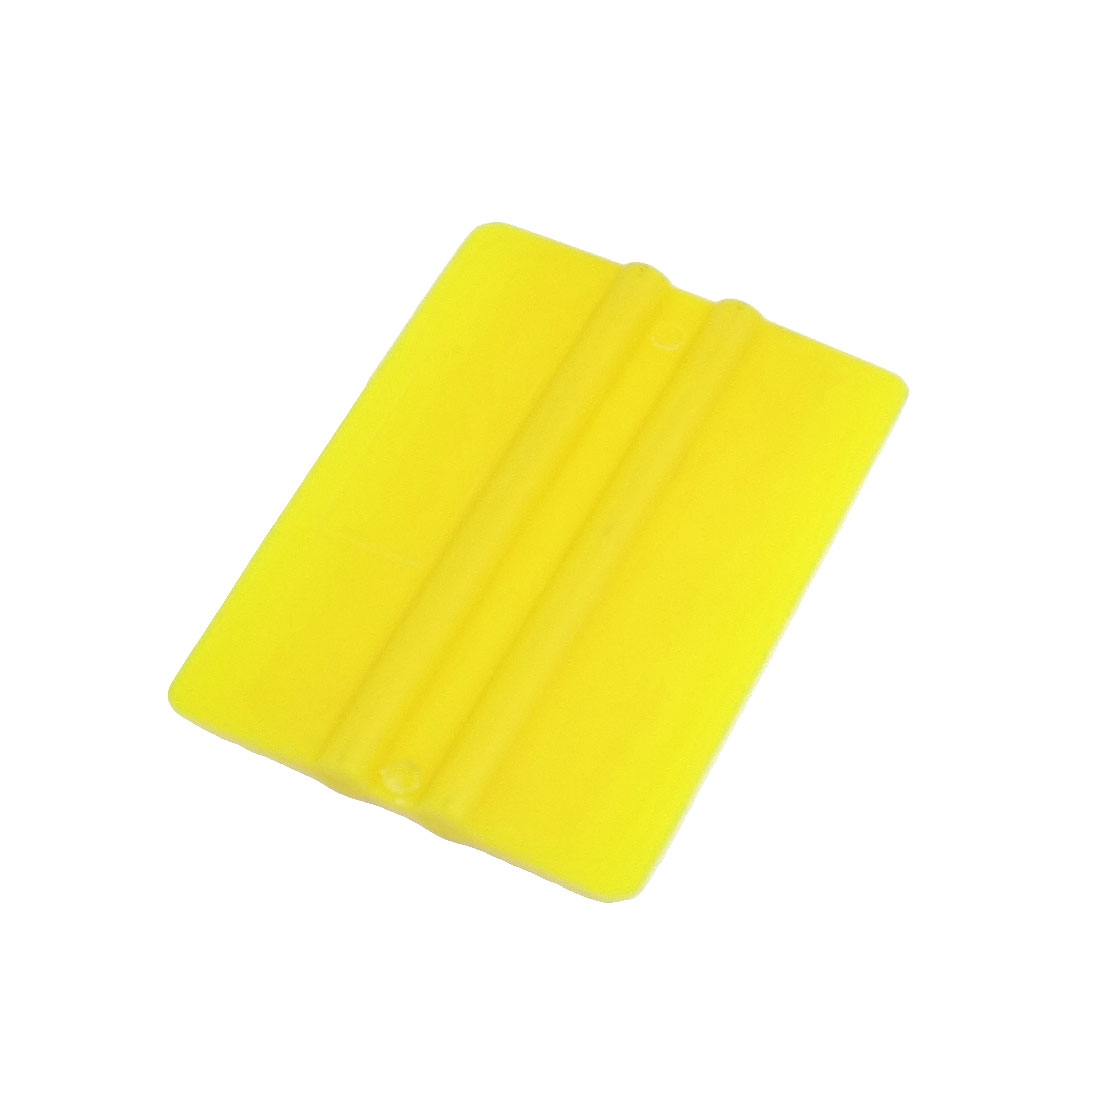 Car Auto Yellow Rectangle Plastic Window Glass Cleaning Scraper Blade